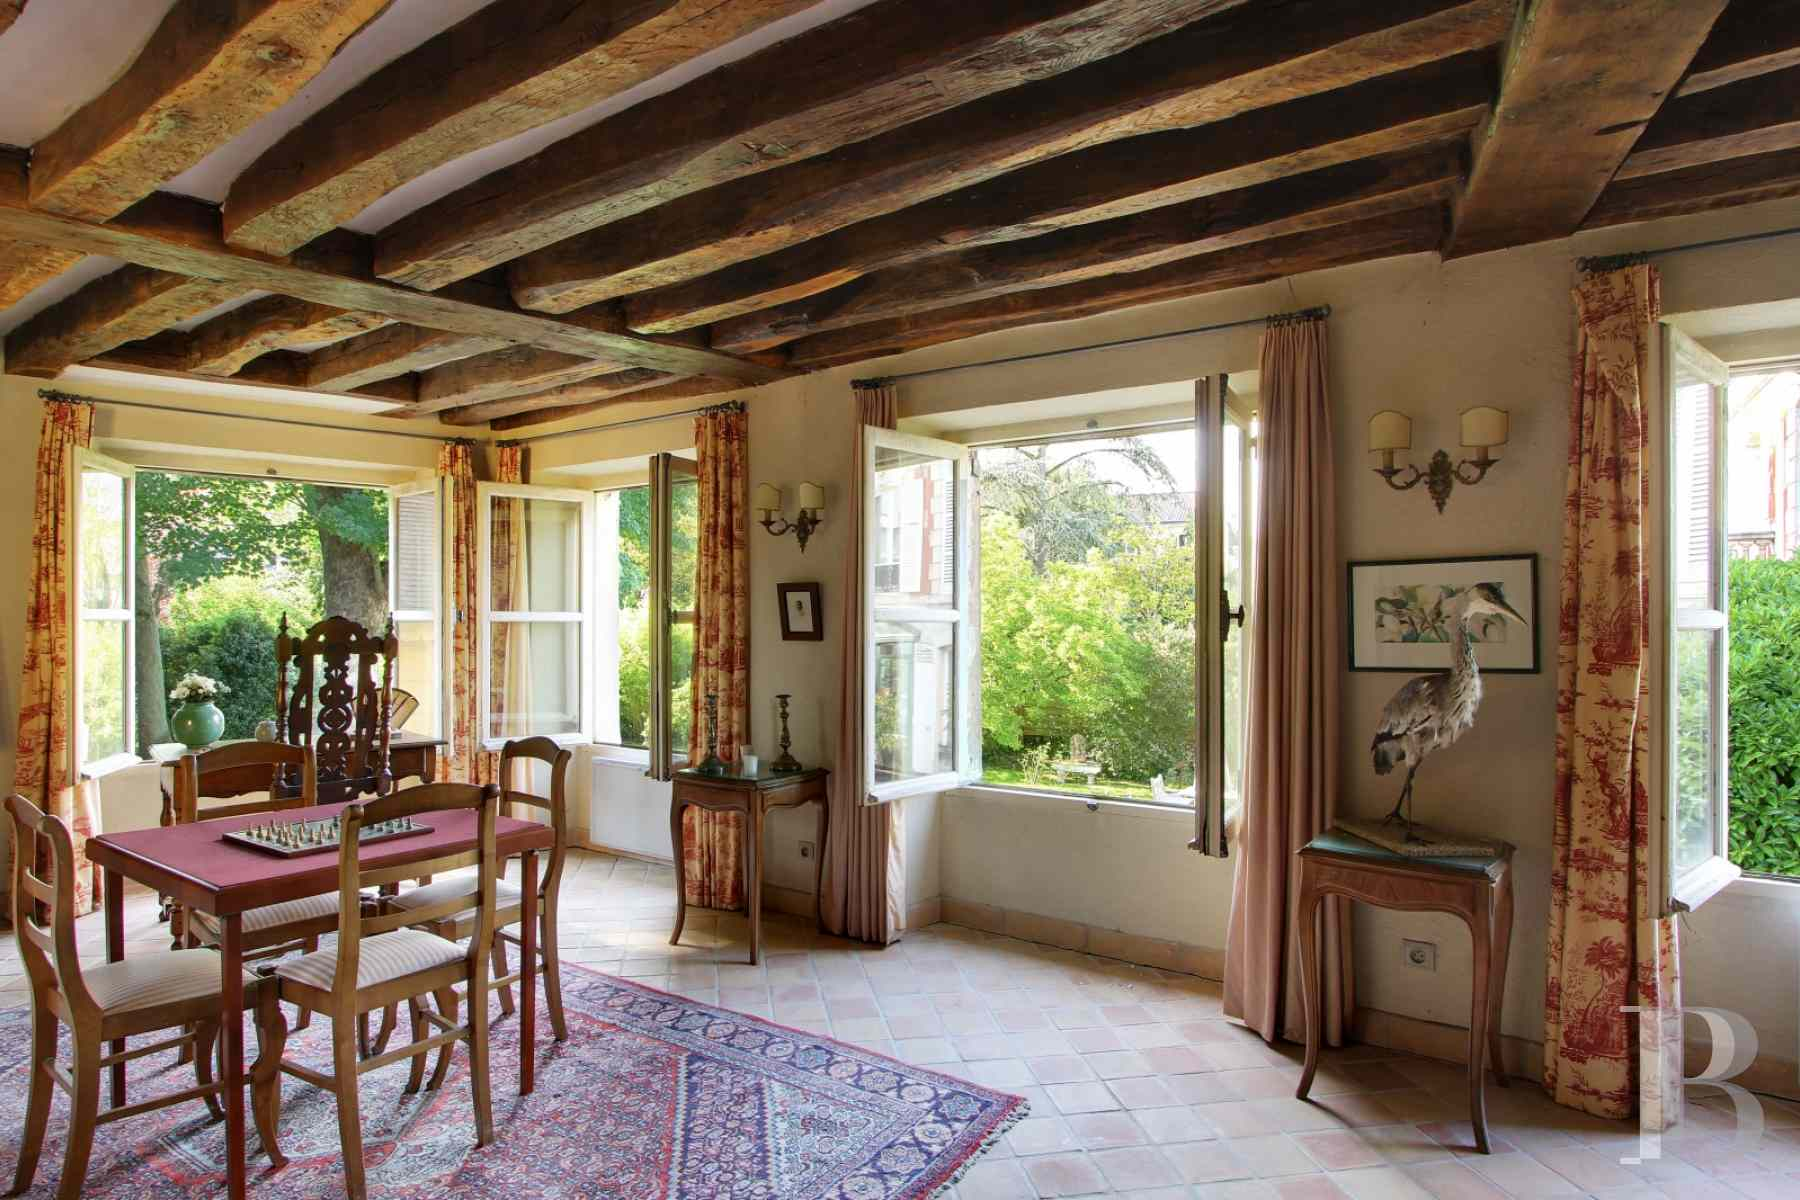 property for sale France paris antony property - 8 zoom